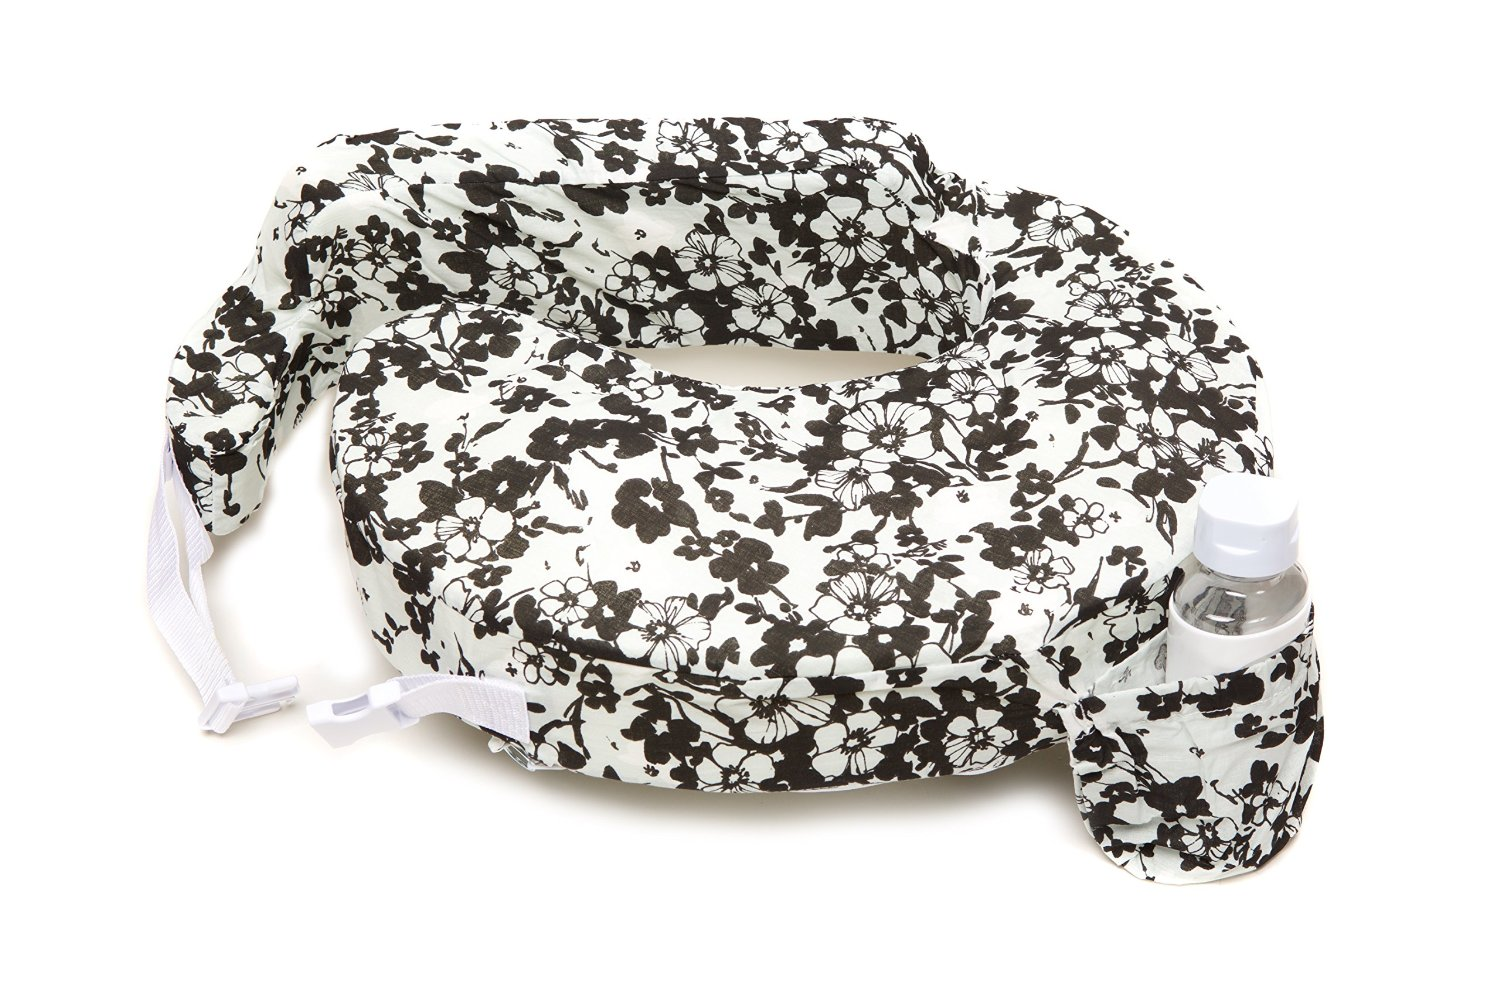 หมอนรองให้นม My Brest Friend Nursing Pillow รุ่น Original ลาย Evening Bloom, White, Black